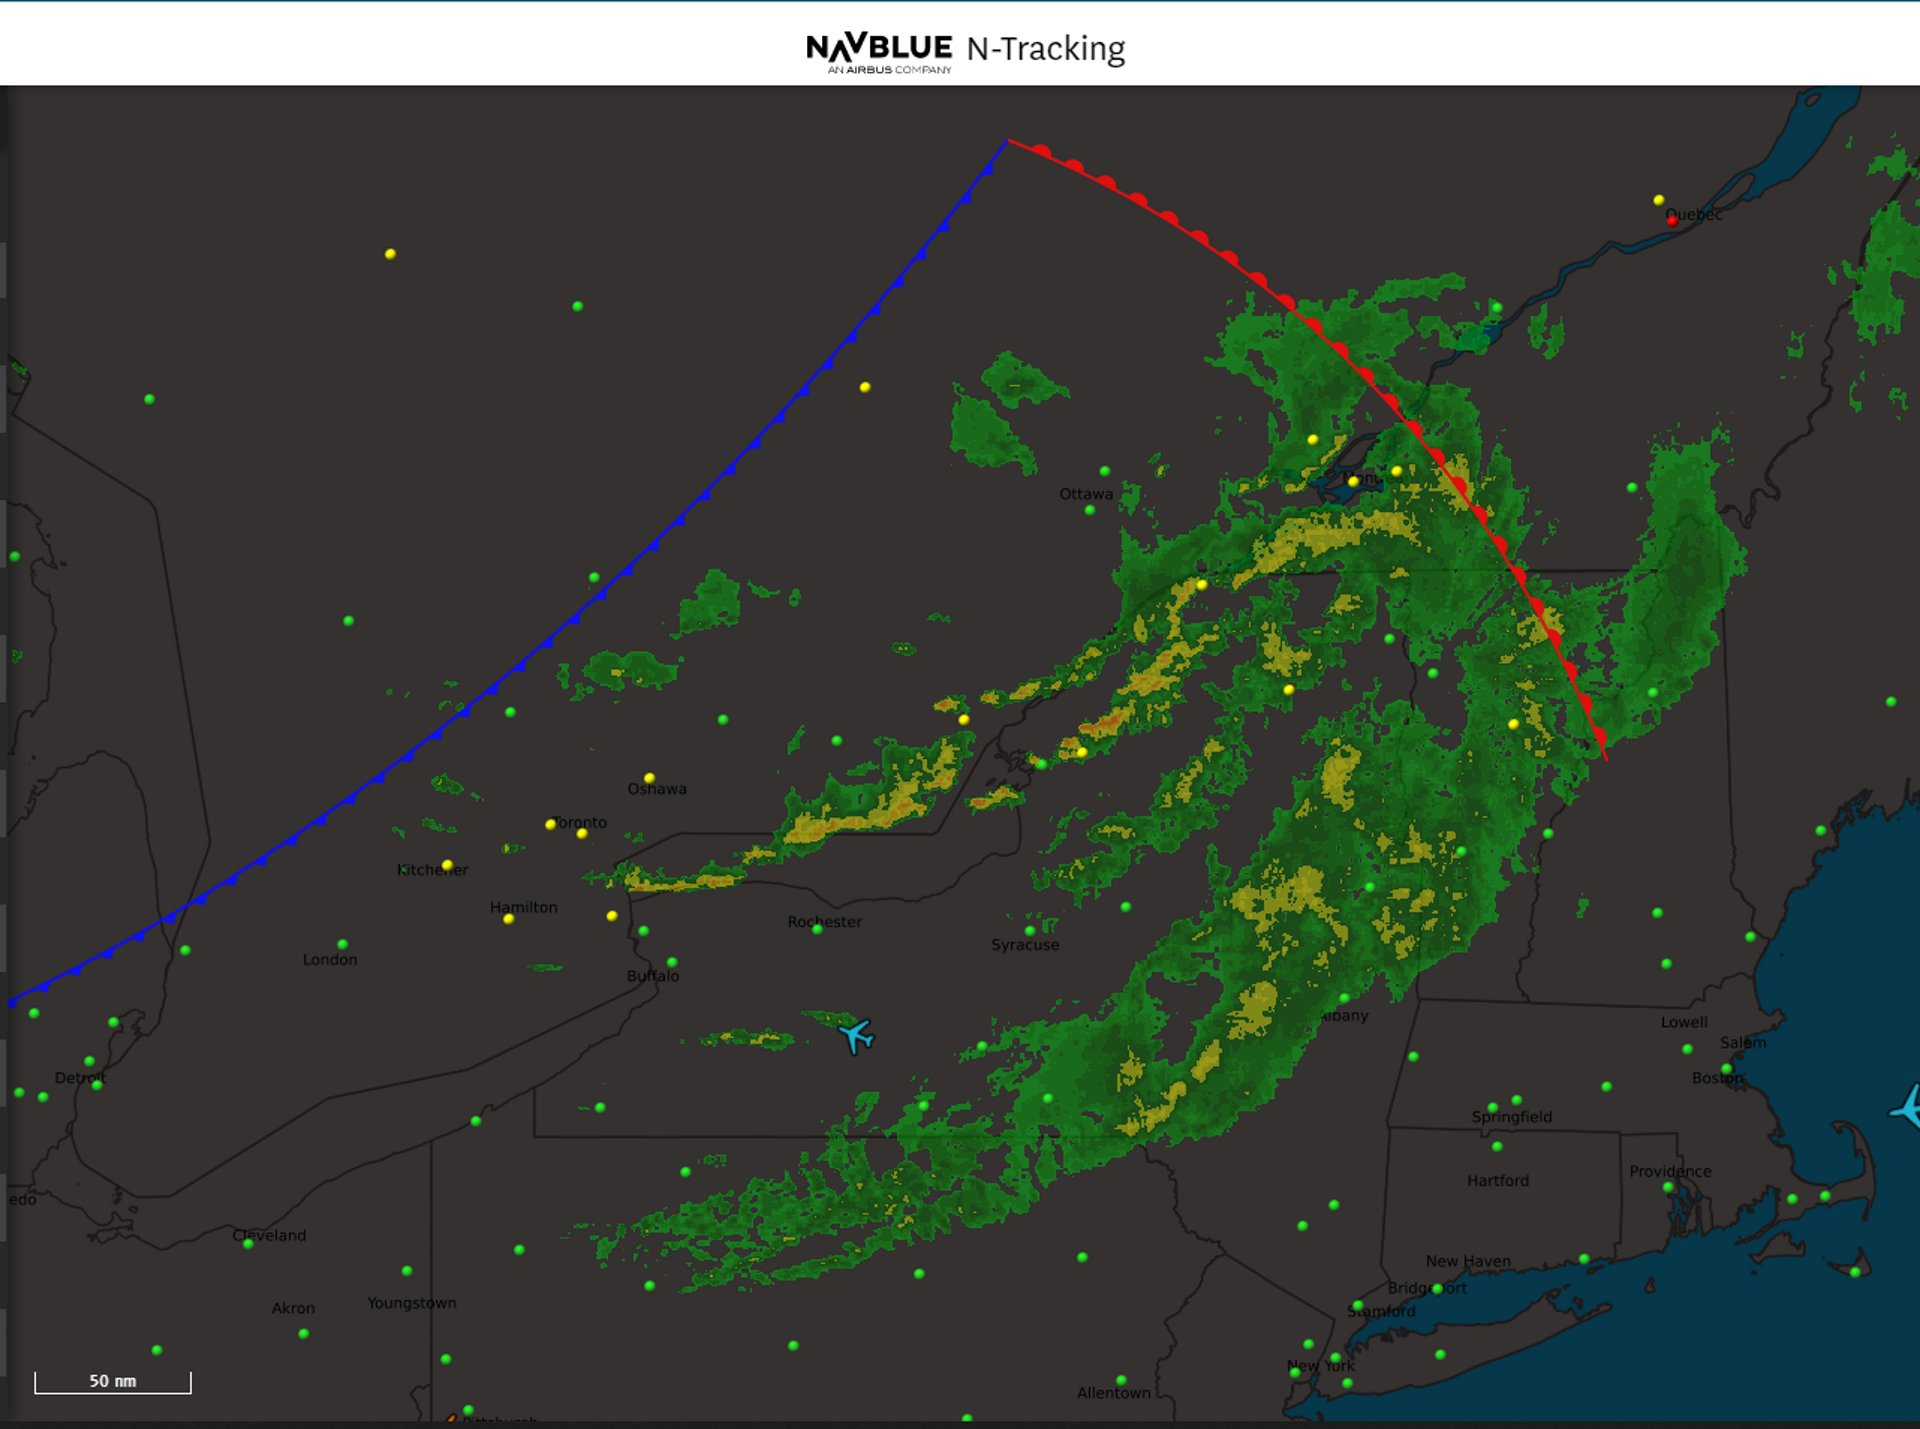 N-Tracking is a browser-based Aircraft-Situational-Display solution from NAVBLUE that empowers the dispatcher with real-time Flight Monitoring, Situational-Awareness and Enroute Communication in a single application.